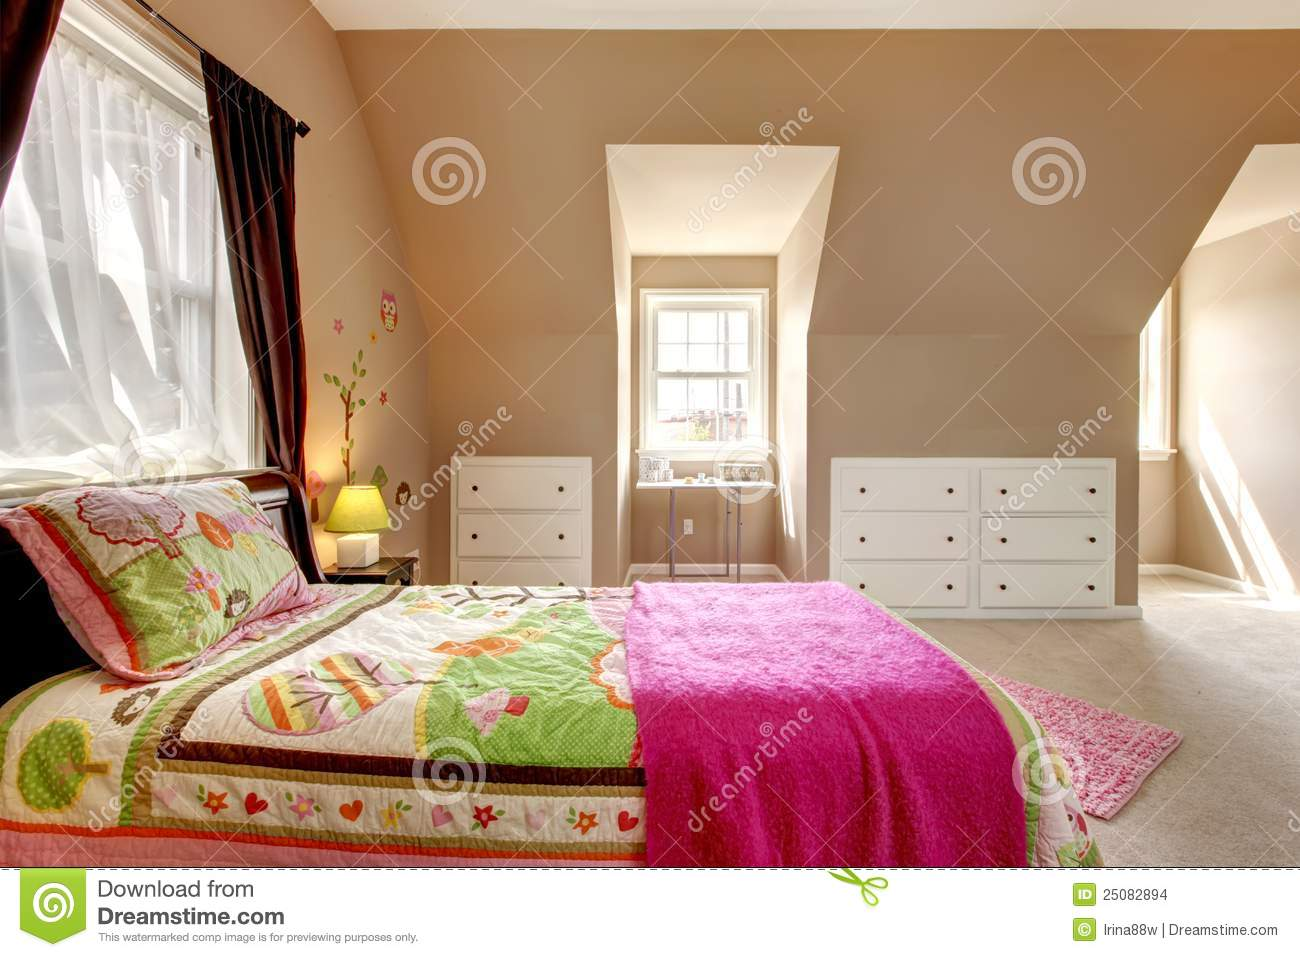 Large brown baby girl bedroom interior stock images for Brown and pink bedroom ideas for a girl